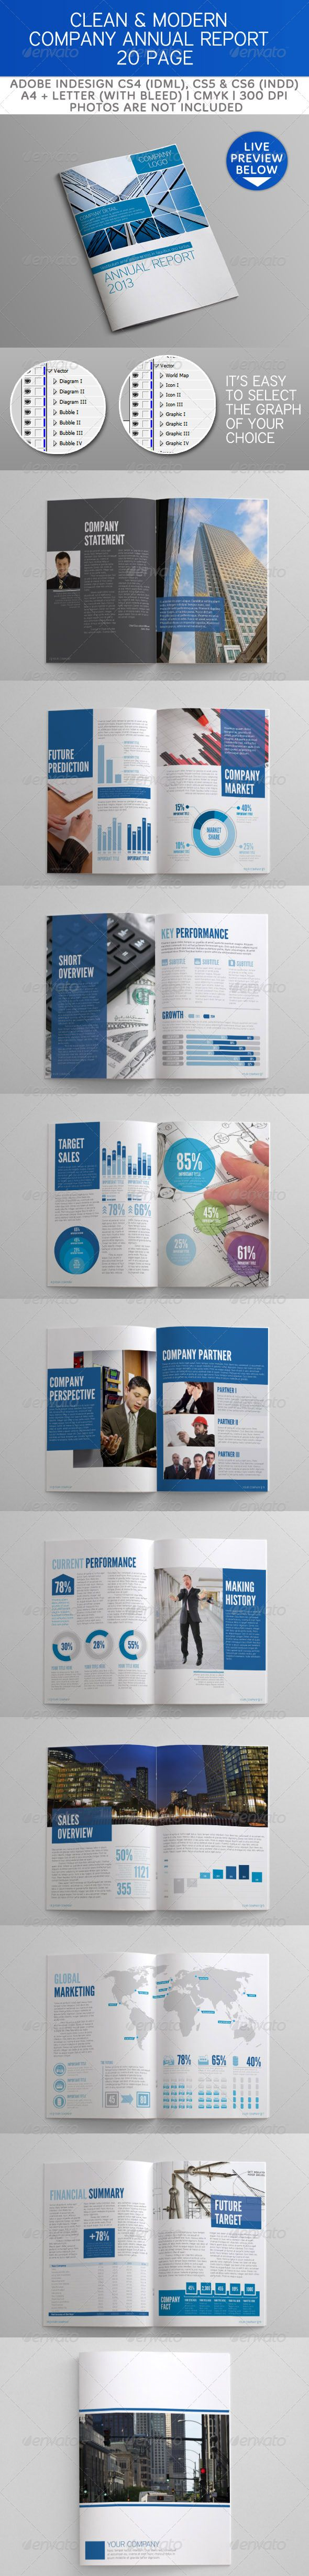 Clean and Modern Company Annual Report  - GraphicRiver Item for Sale